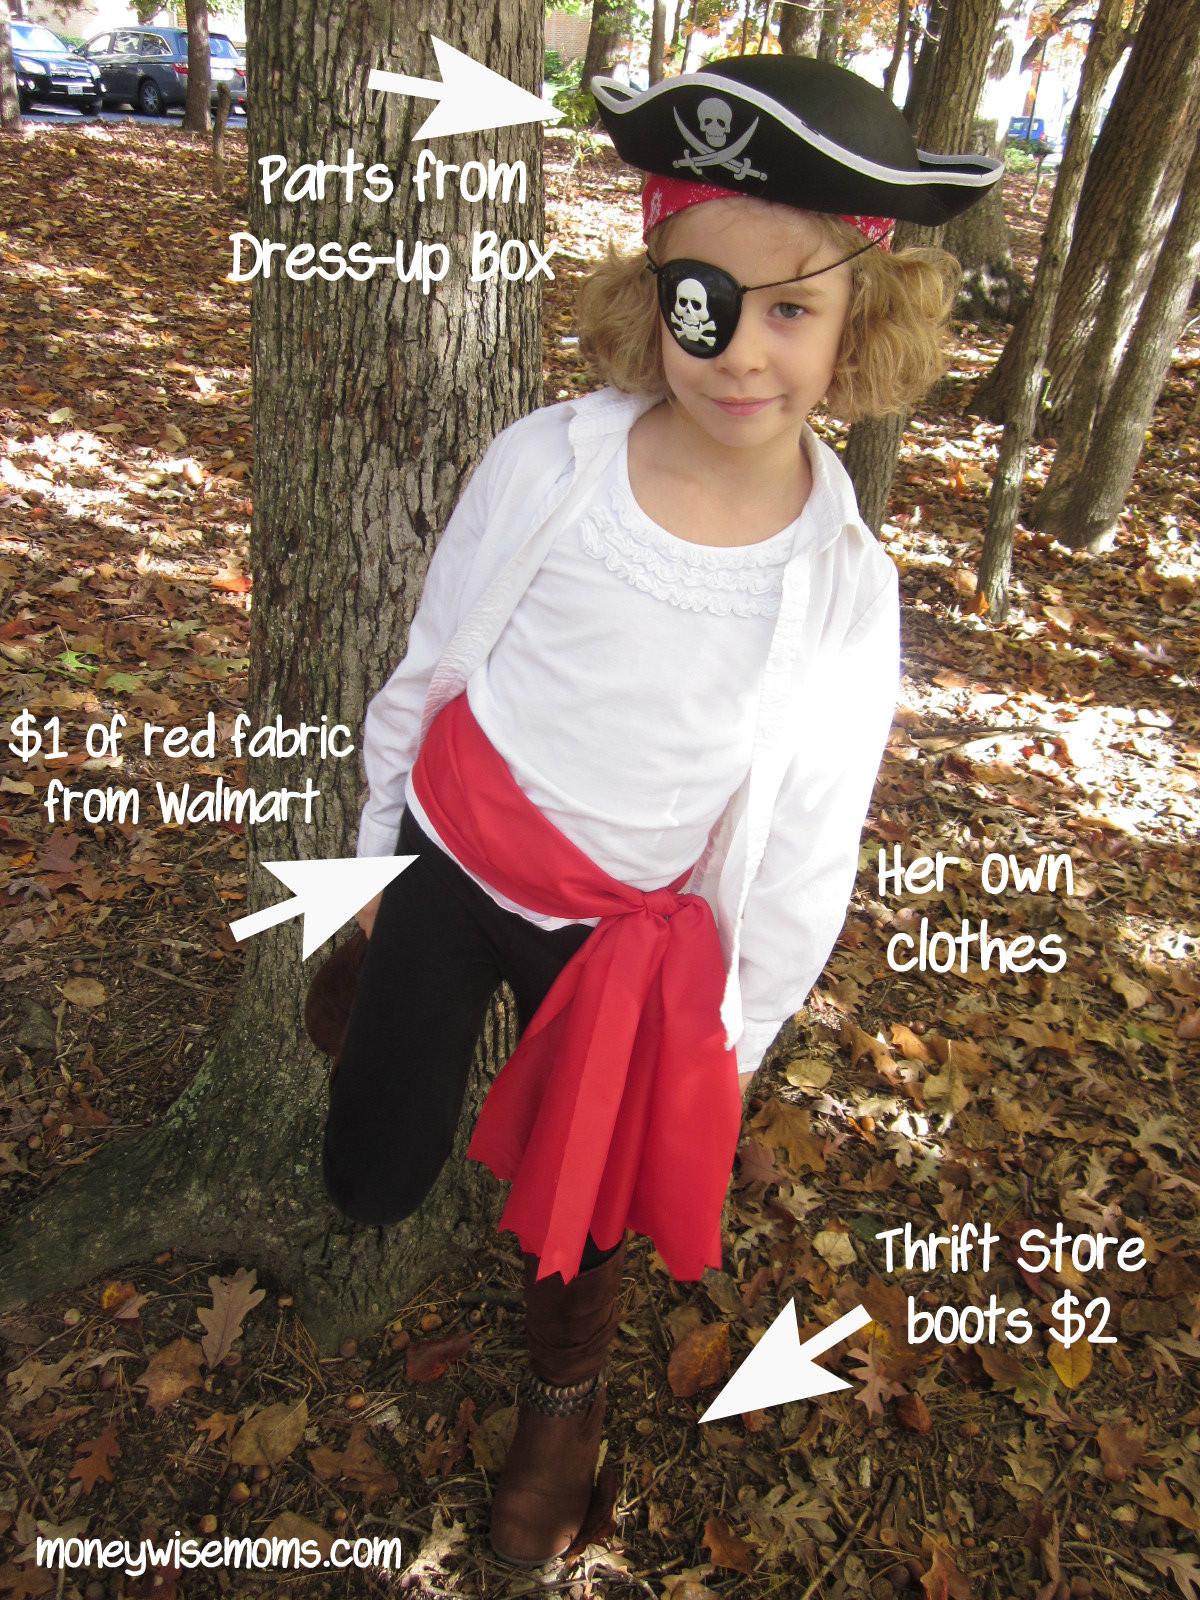 Best ideas about DIY Kids Pirate Costume . Save or Pin Pirate Costume Tips for a Moneywise Halloween Now.